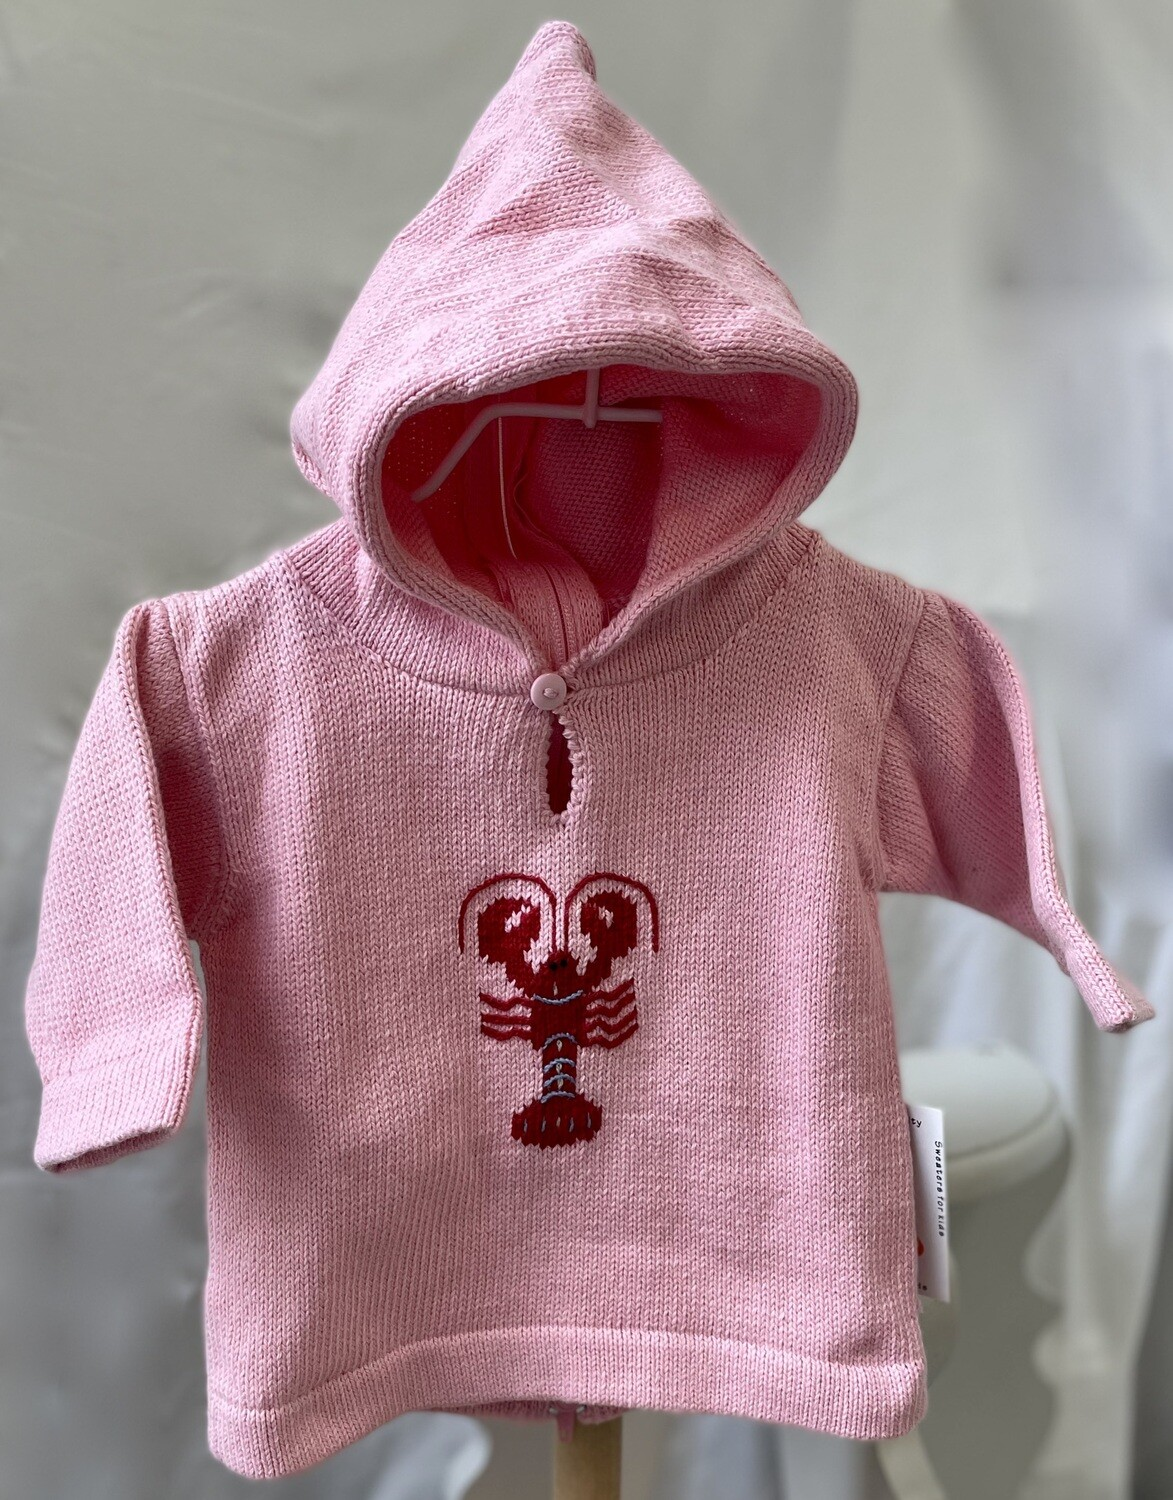 Claver Zip up hooded sweater - 18 mos pink cotton